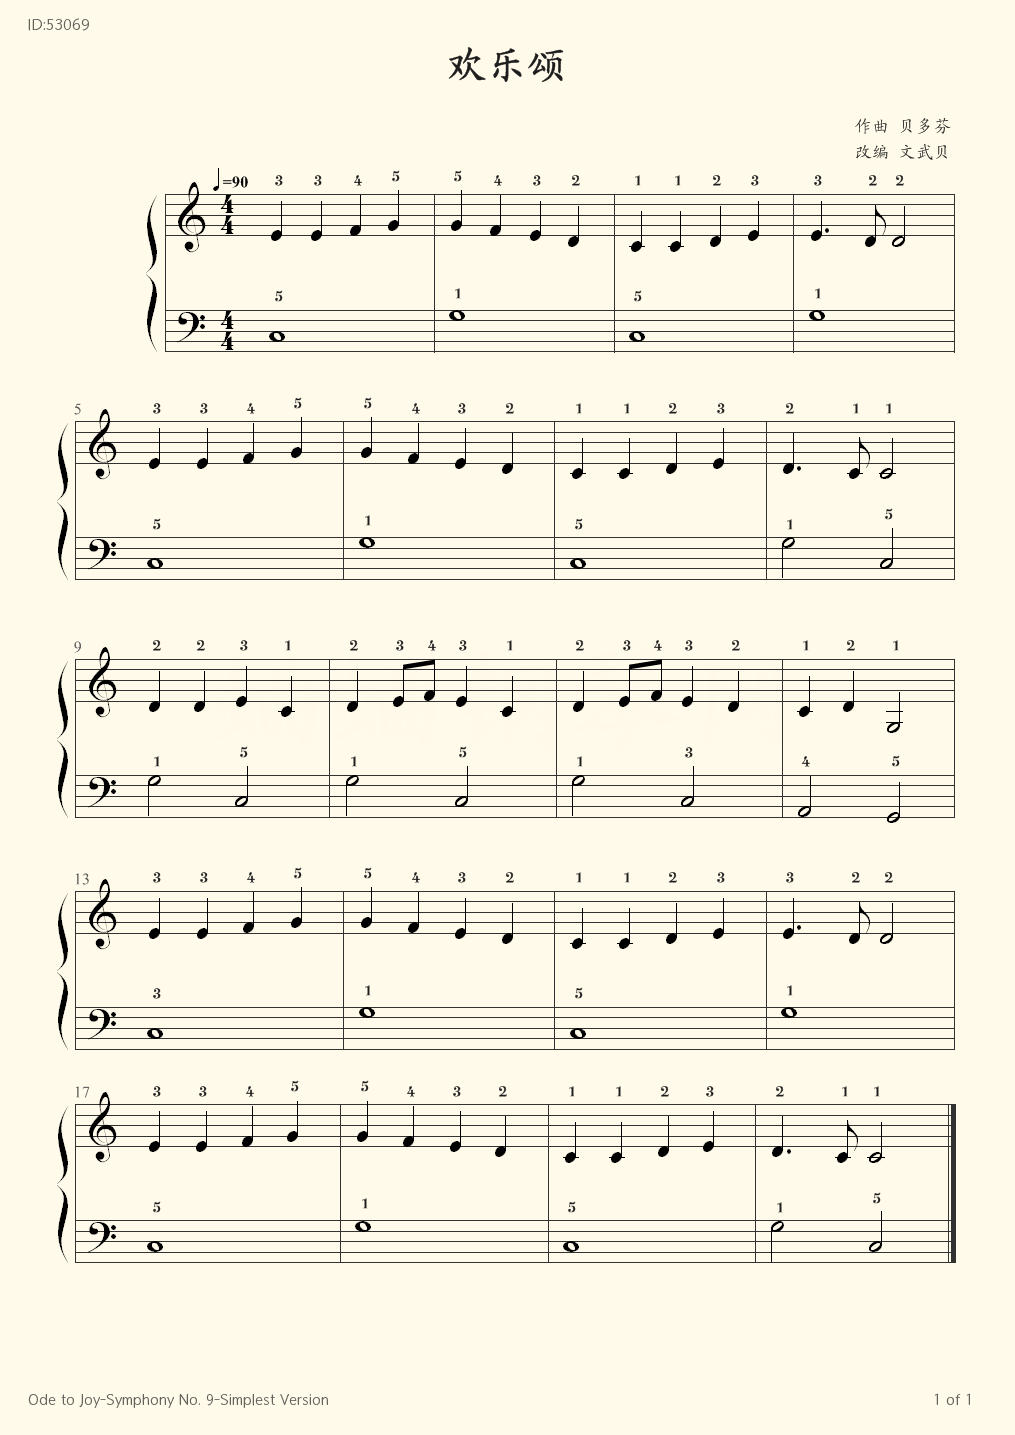 Ode to Joy Symphony No 9 Simplest Version - Beethoven - first page